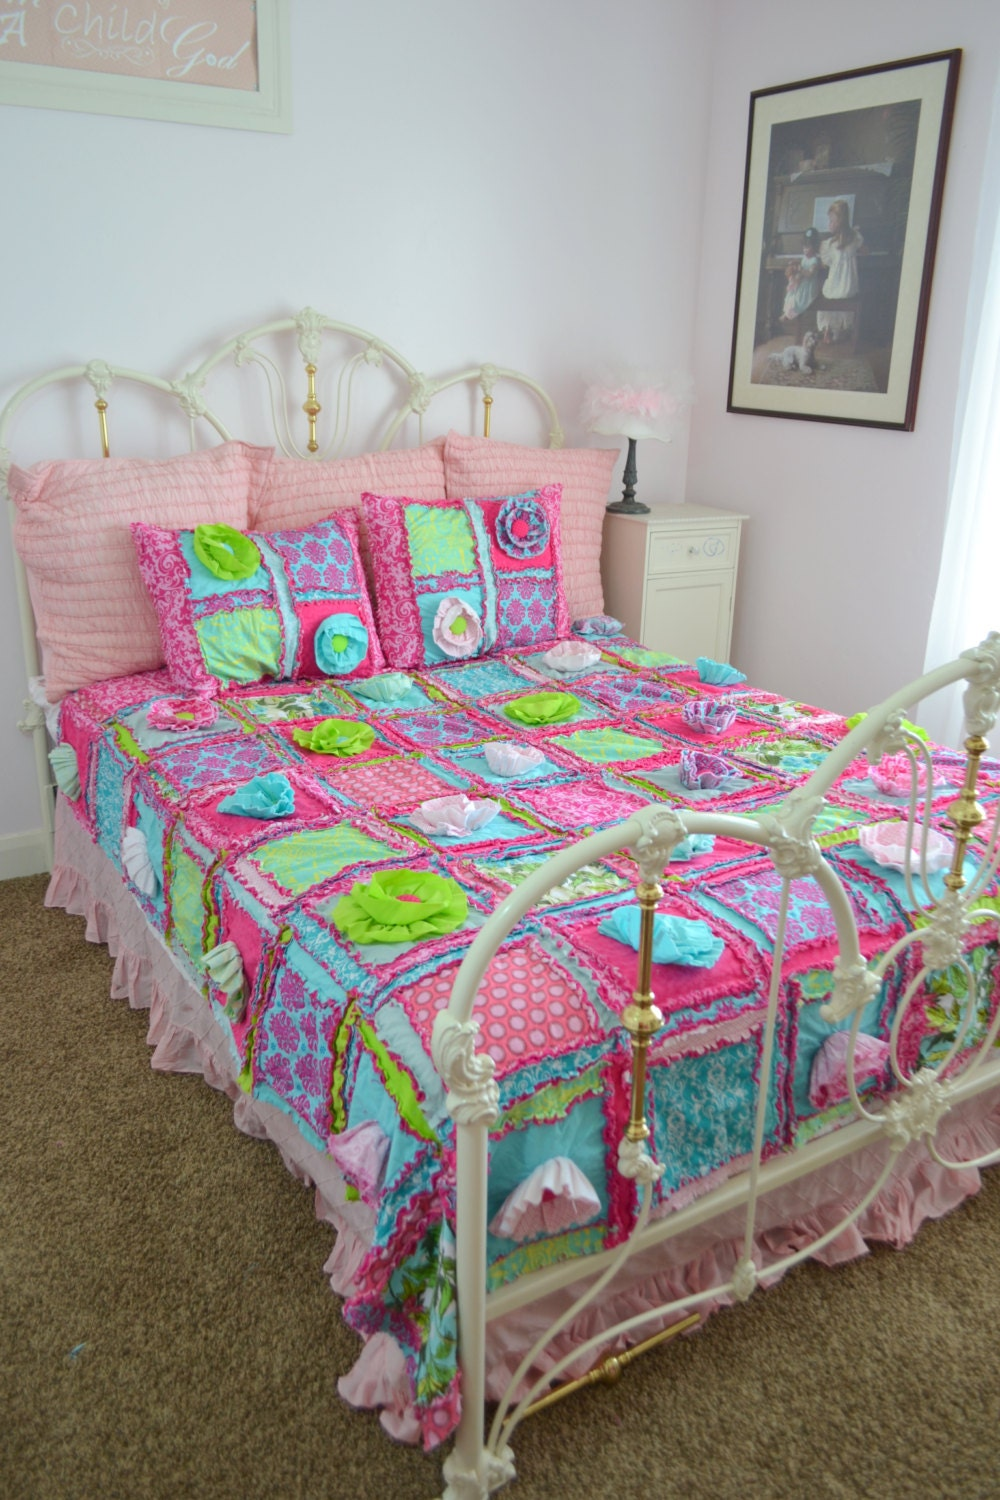 New Ruffle Flower Rag Quilt in Turquoise and PInk in Multiple Sizes PLUS Pillow Shams